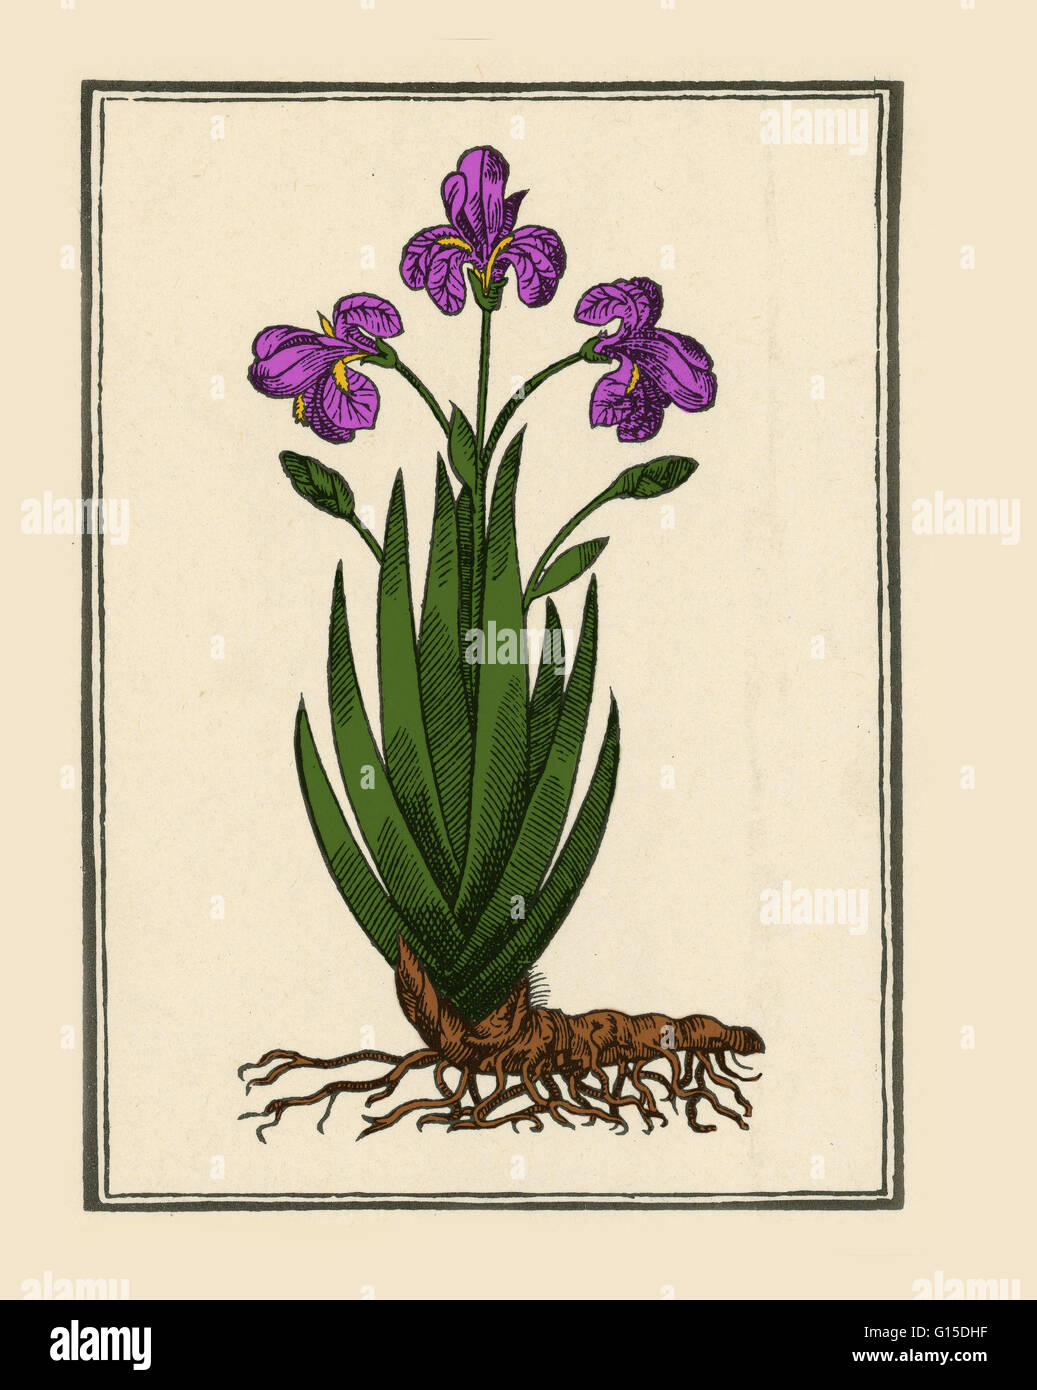 The iris (iris florentina), native to the Mediterranean region and southern Europe, was considered by the ancient - Stock Image